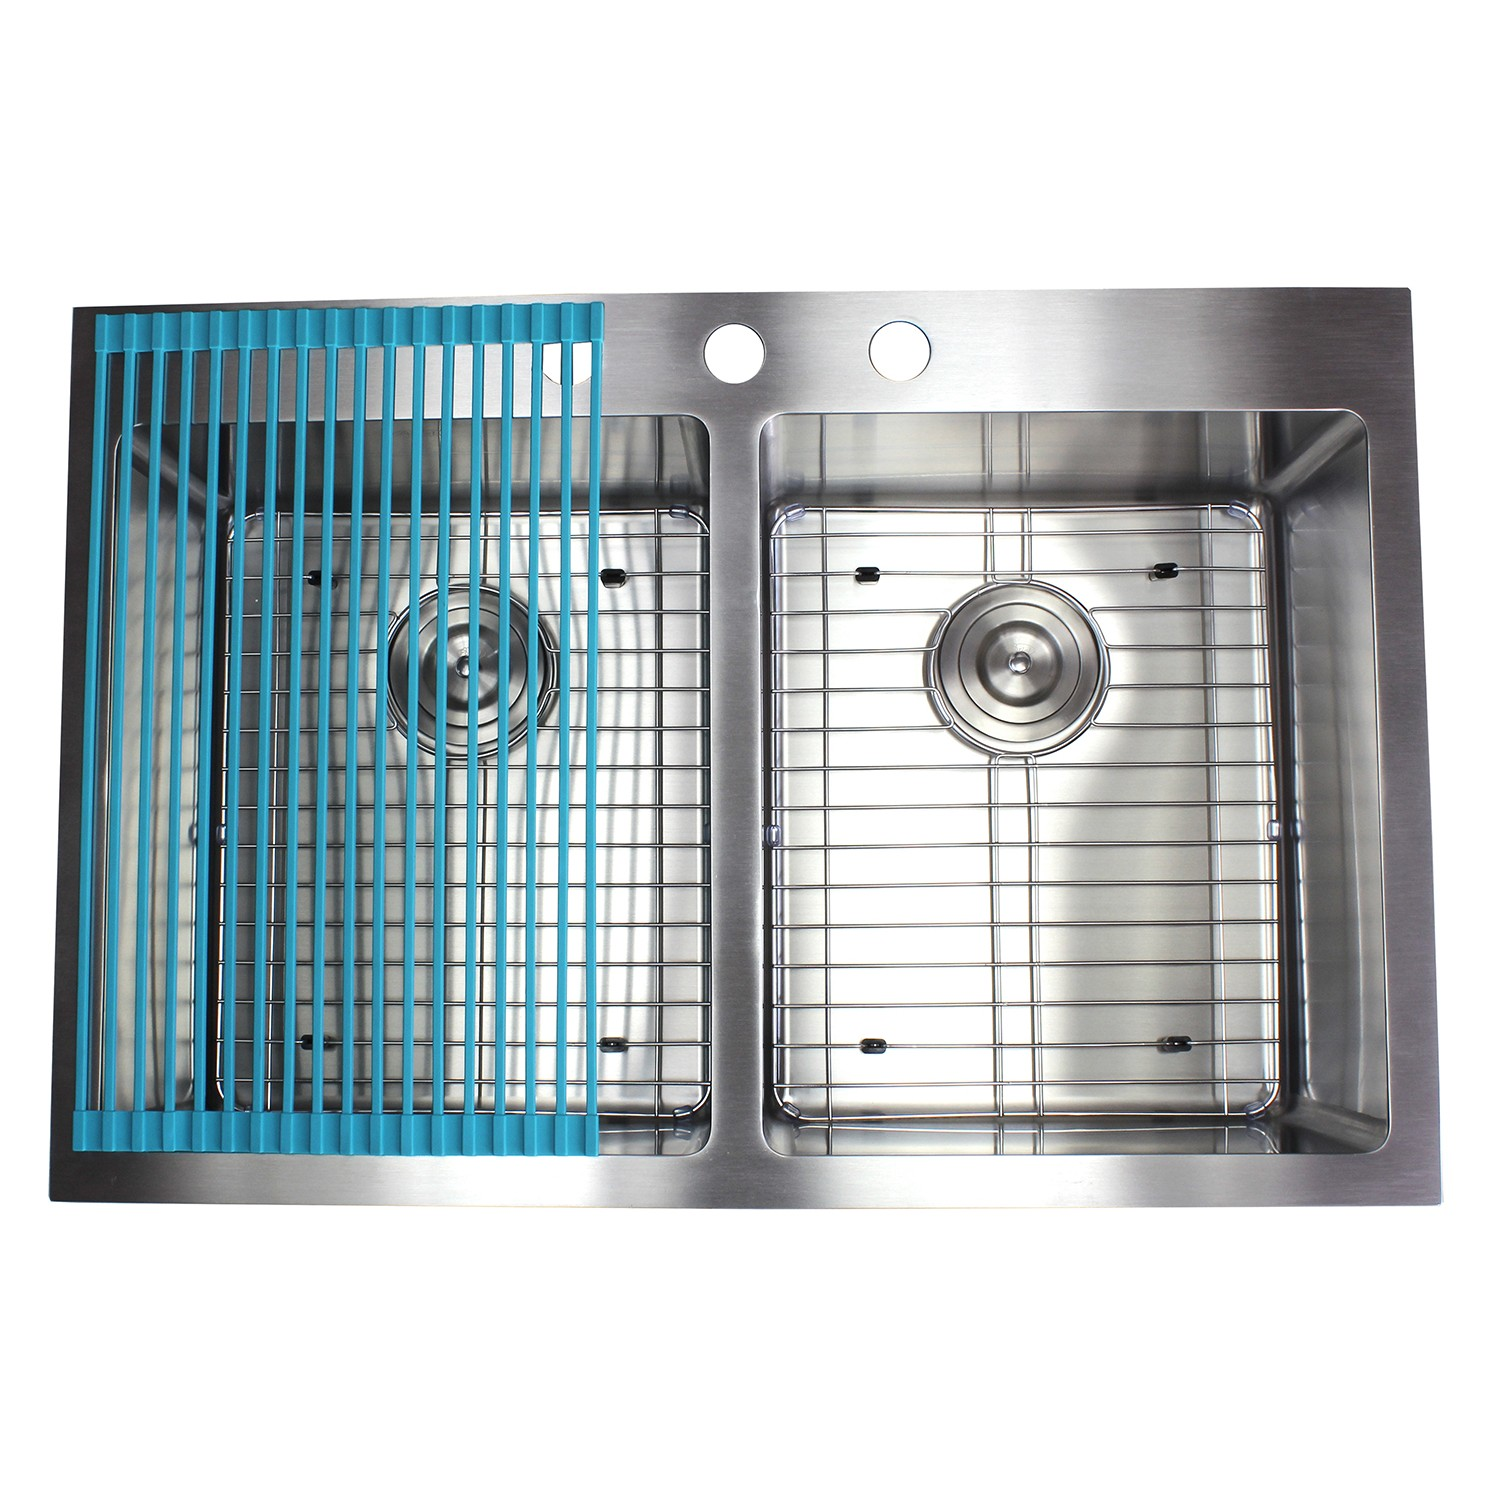 33 Inch Top-Mount / Drop-In Stainless Steel 50/50 Double Bowl ...